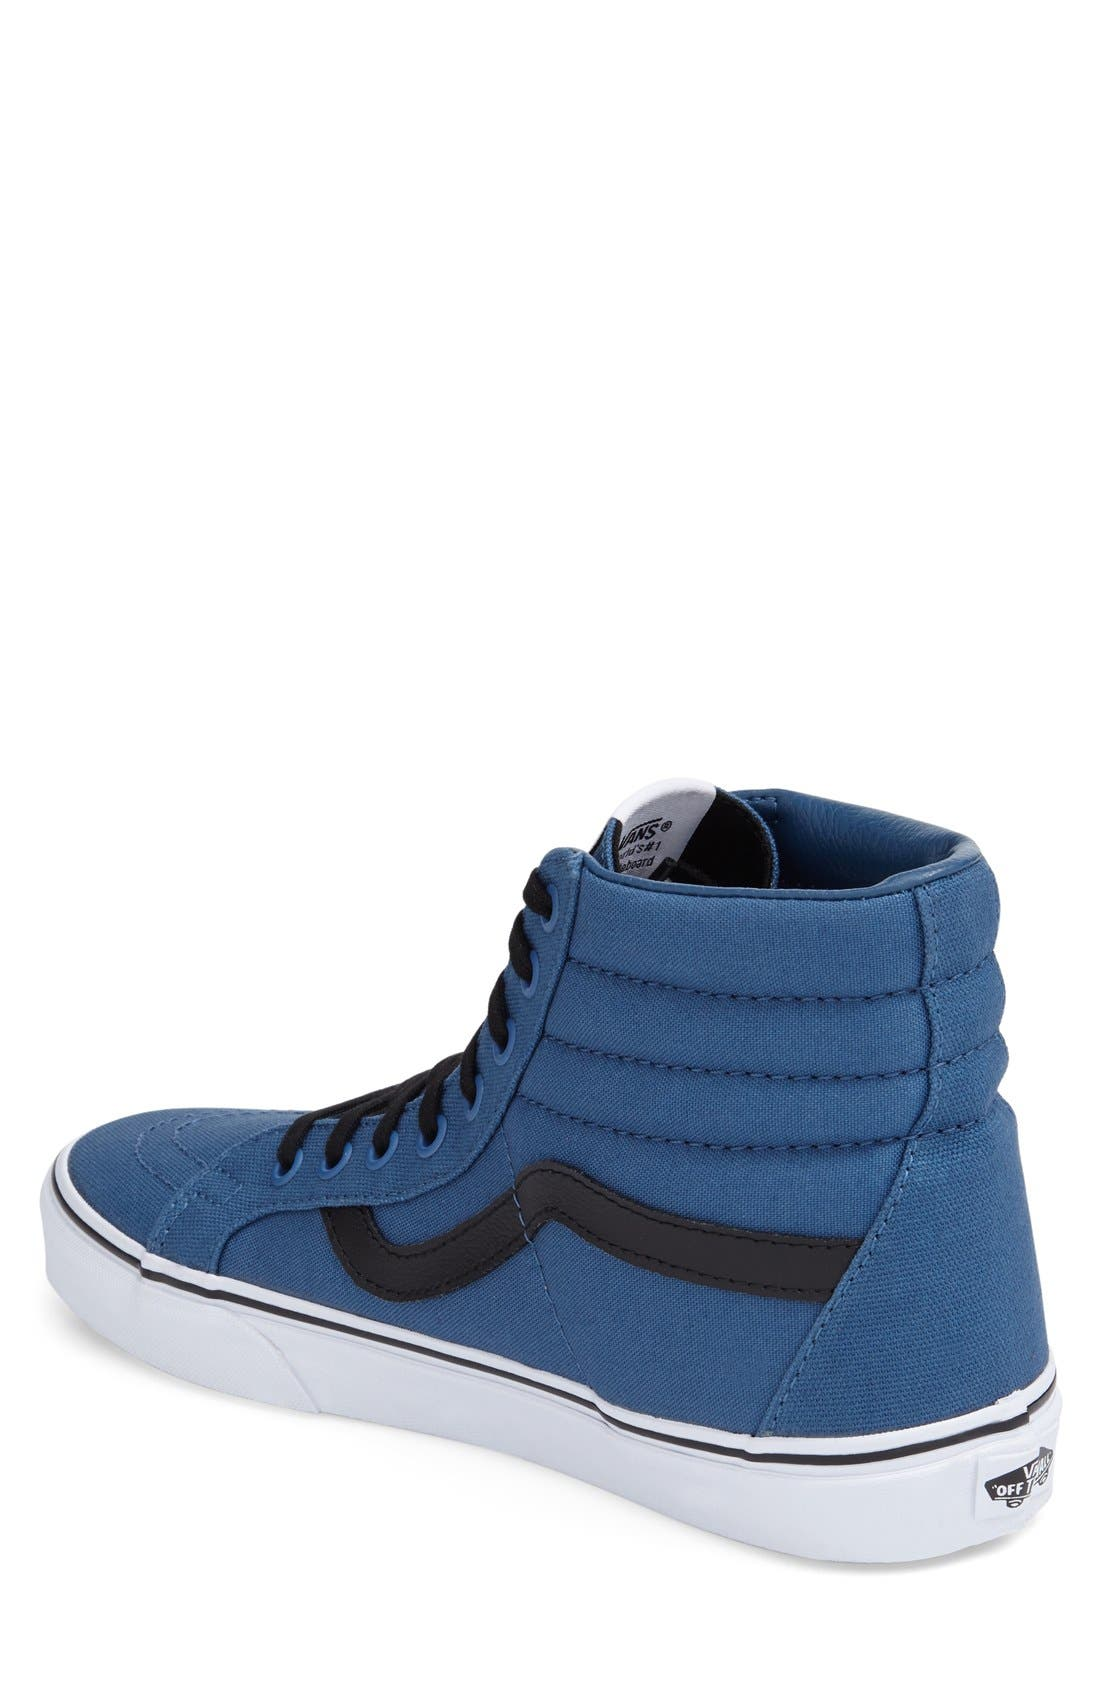 Alternate Image 2  - Vans 'Sk8-Hi Reissue' Sneaker (Men)